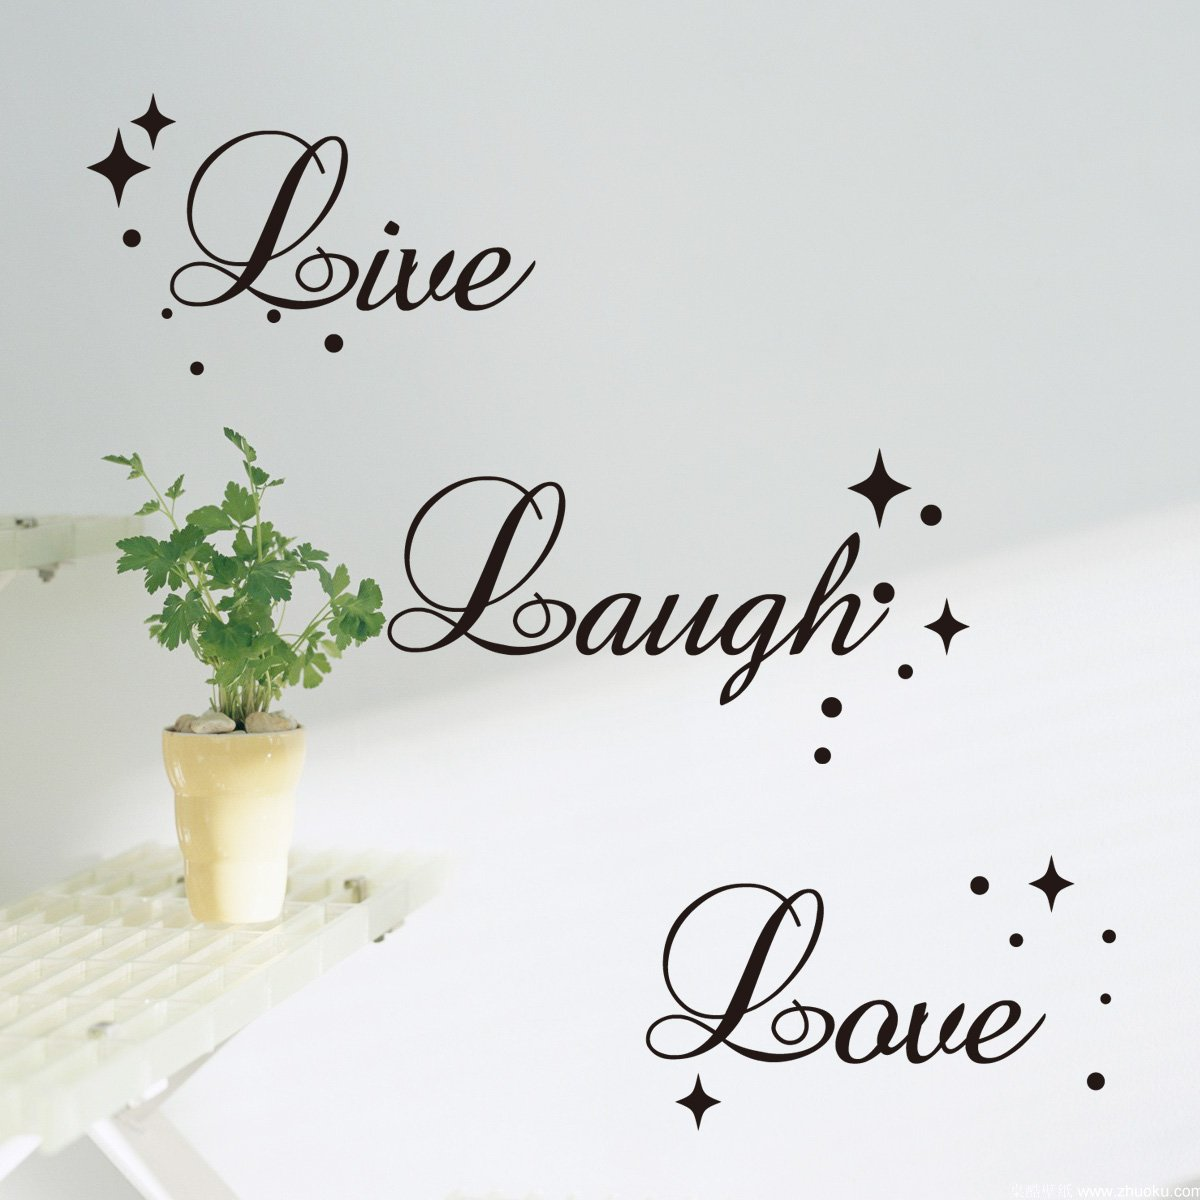 Fancy Writing Live Laugh Love Quote Wall Art Vinyl Sticker Decal  Fashionable Decoration (Black,Large Size): Amazon.co.uk: Kitchen U0026 Home